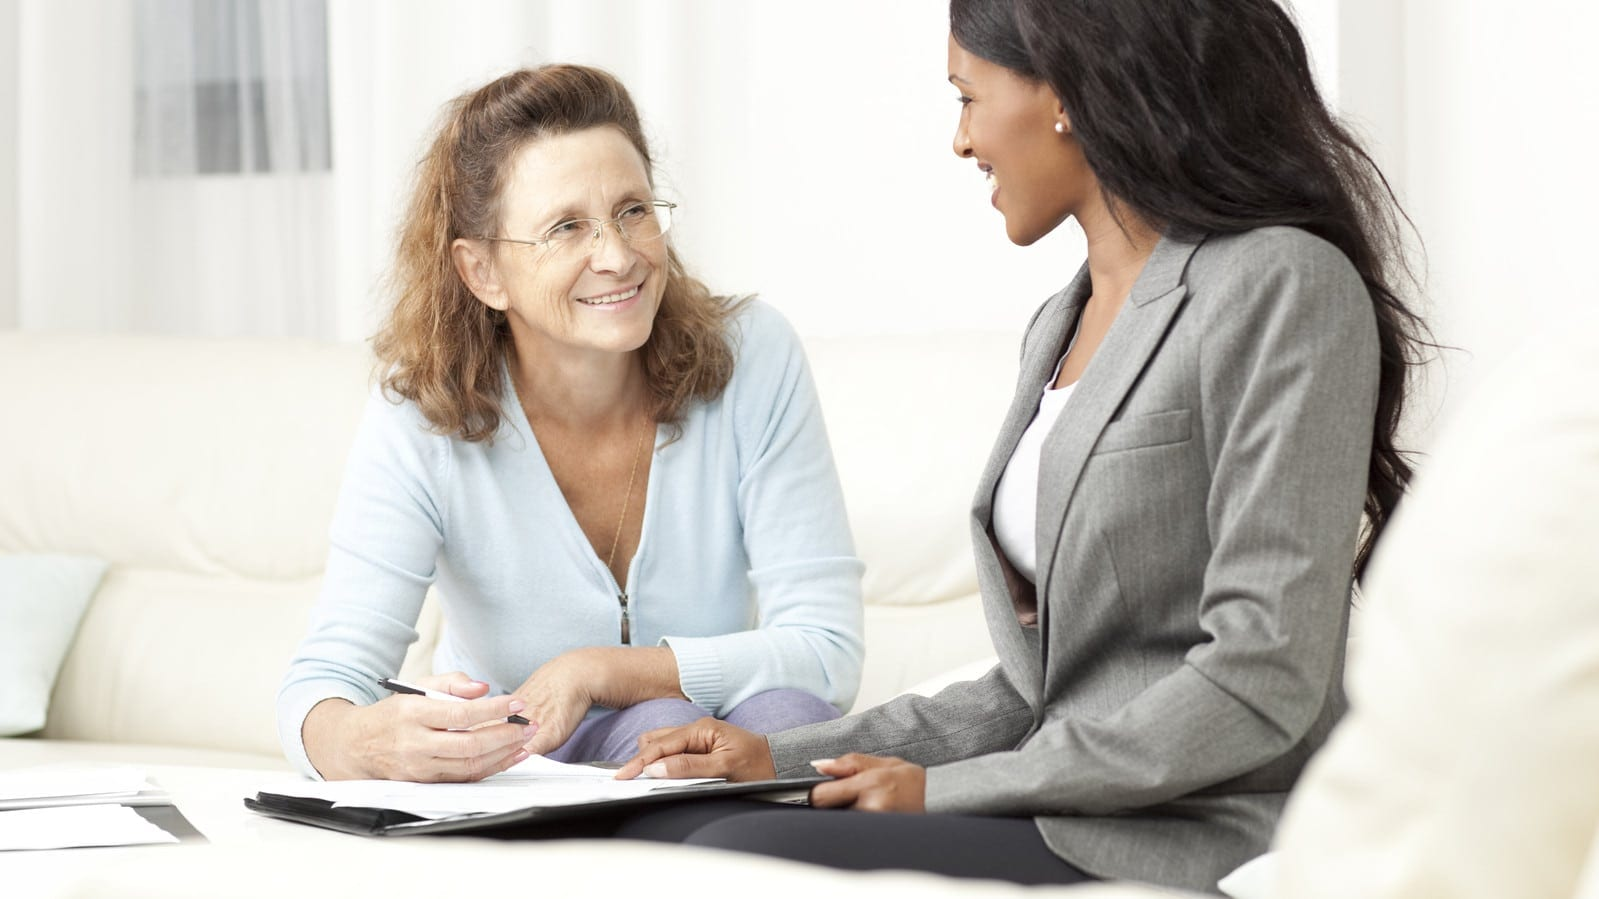 Social Security Disability Lawyer Meeting With A Female Client